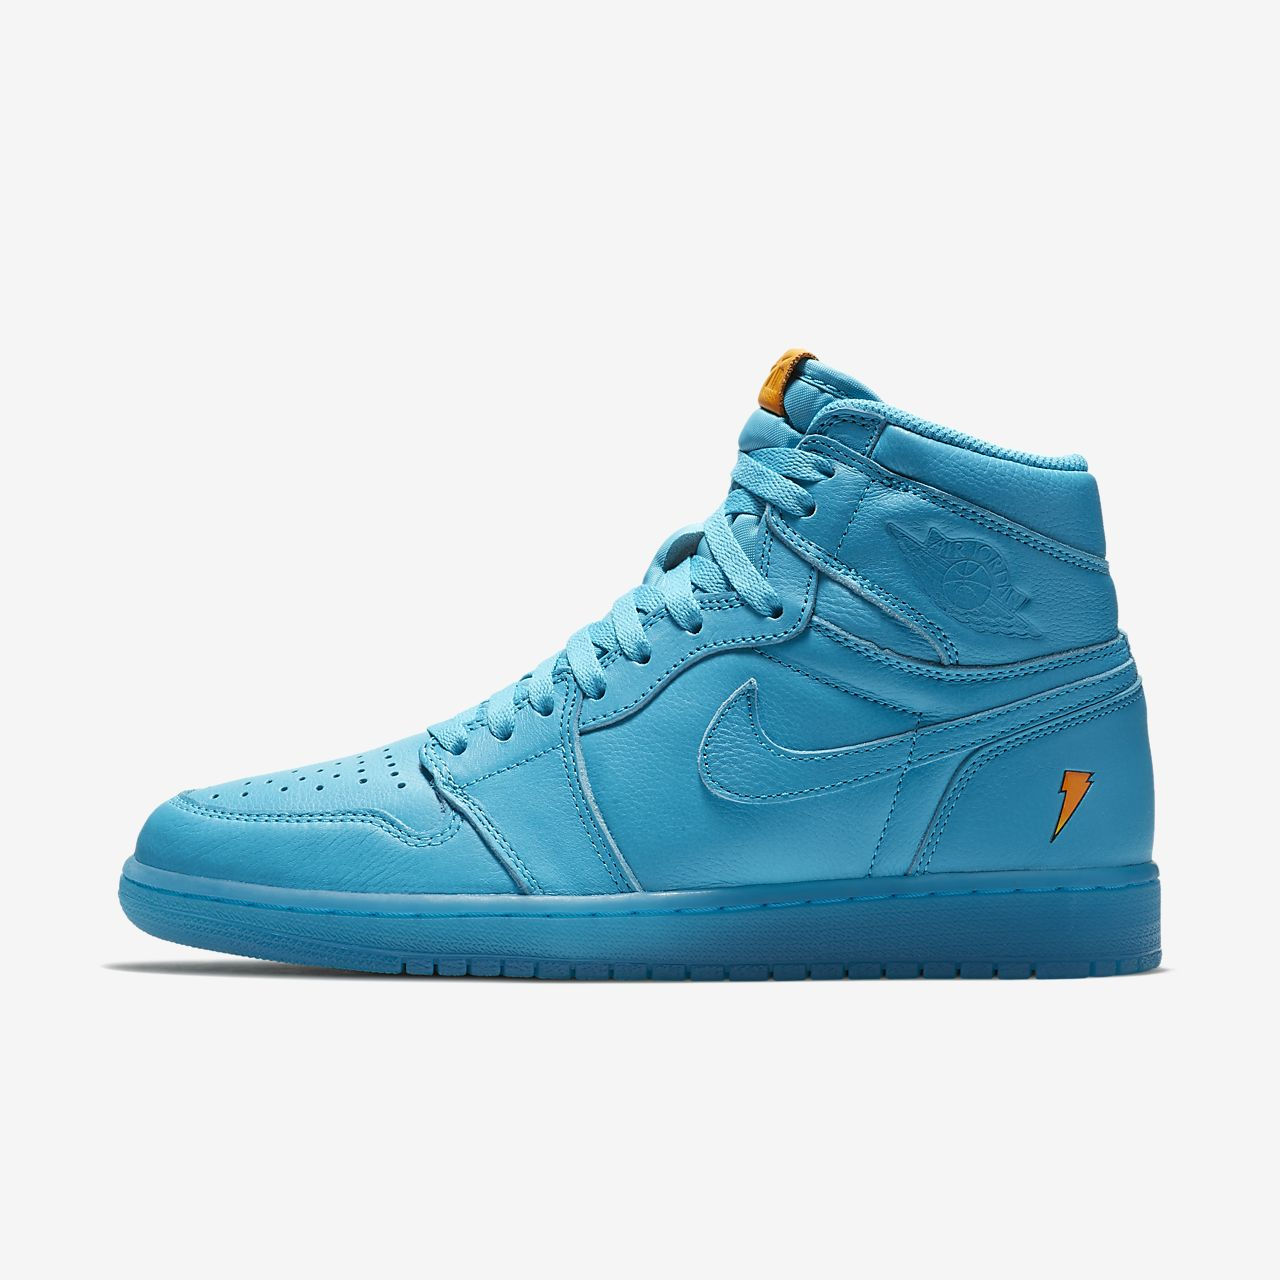 ... Air Jordan 1 Retro High OG 'Cool Blue' Men's Shoe